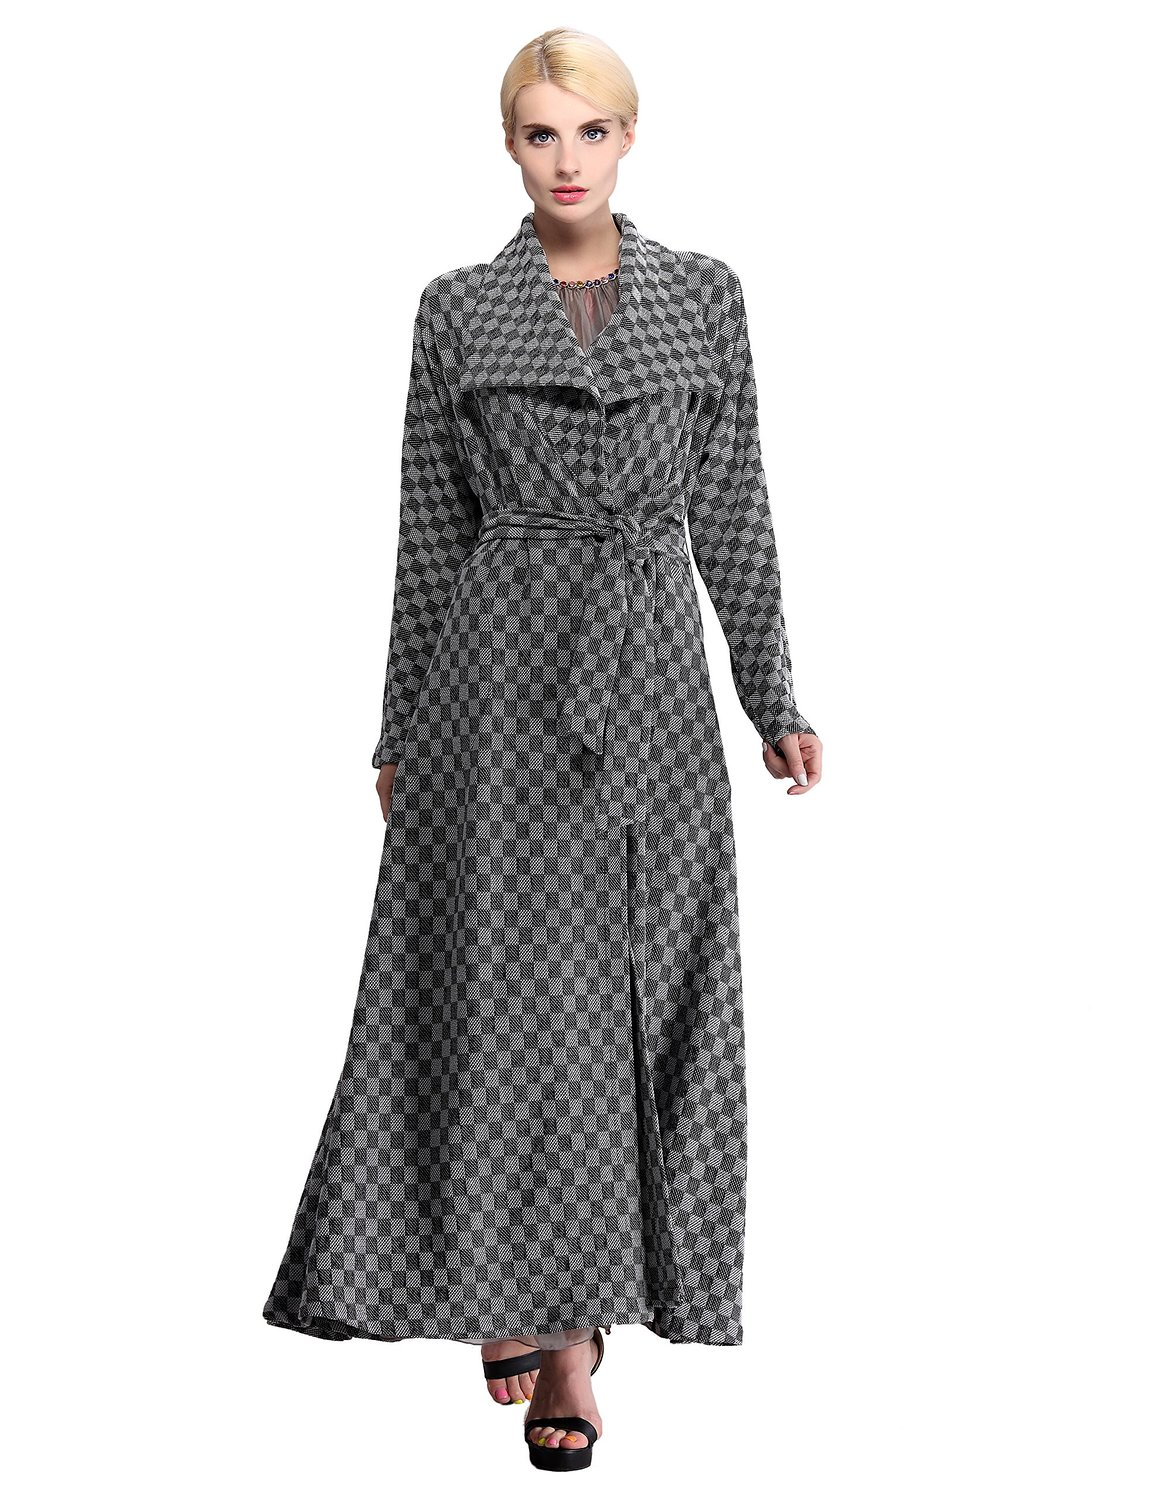 Amazon.com: Yacun Women's Elegant Knitted Maxi Dust Coat: Clothing